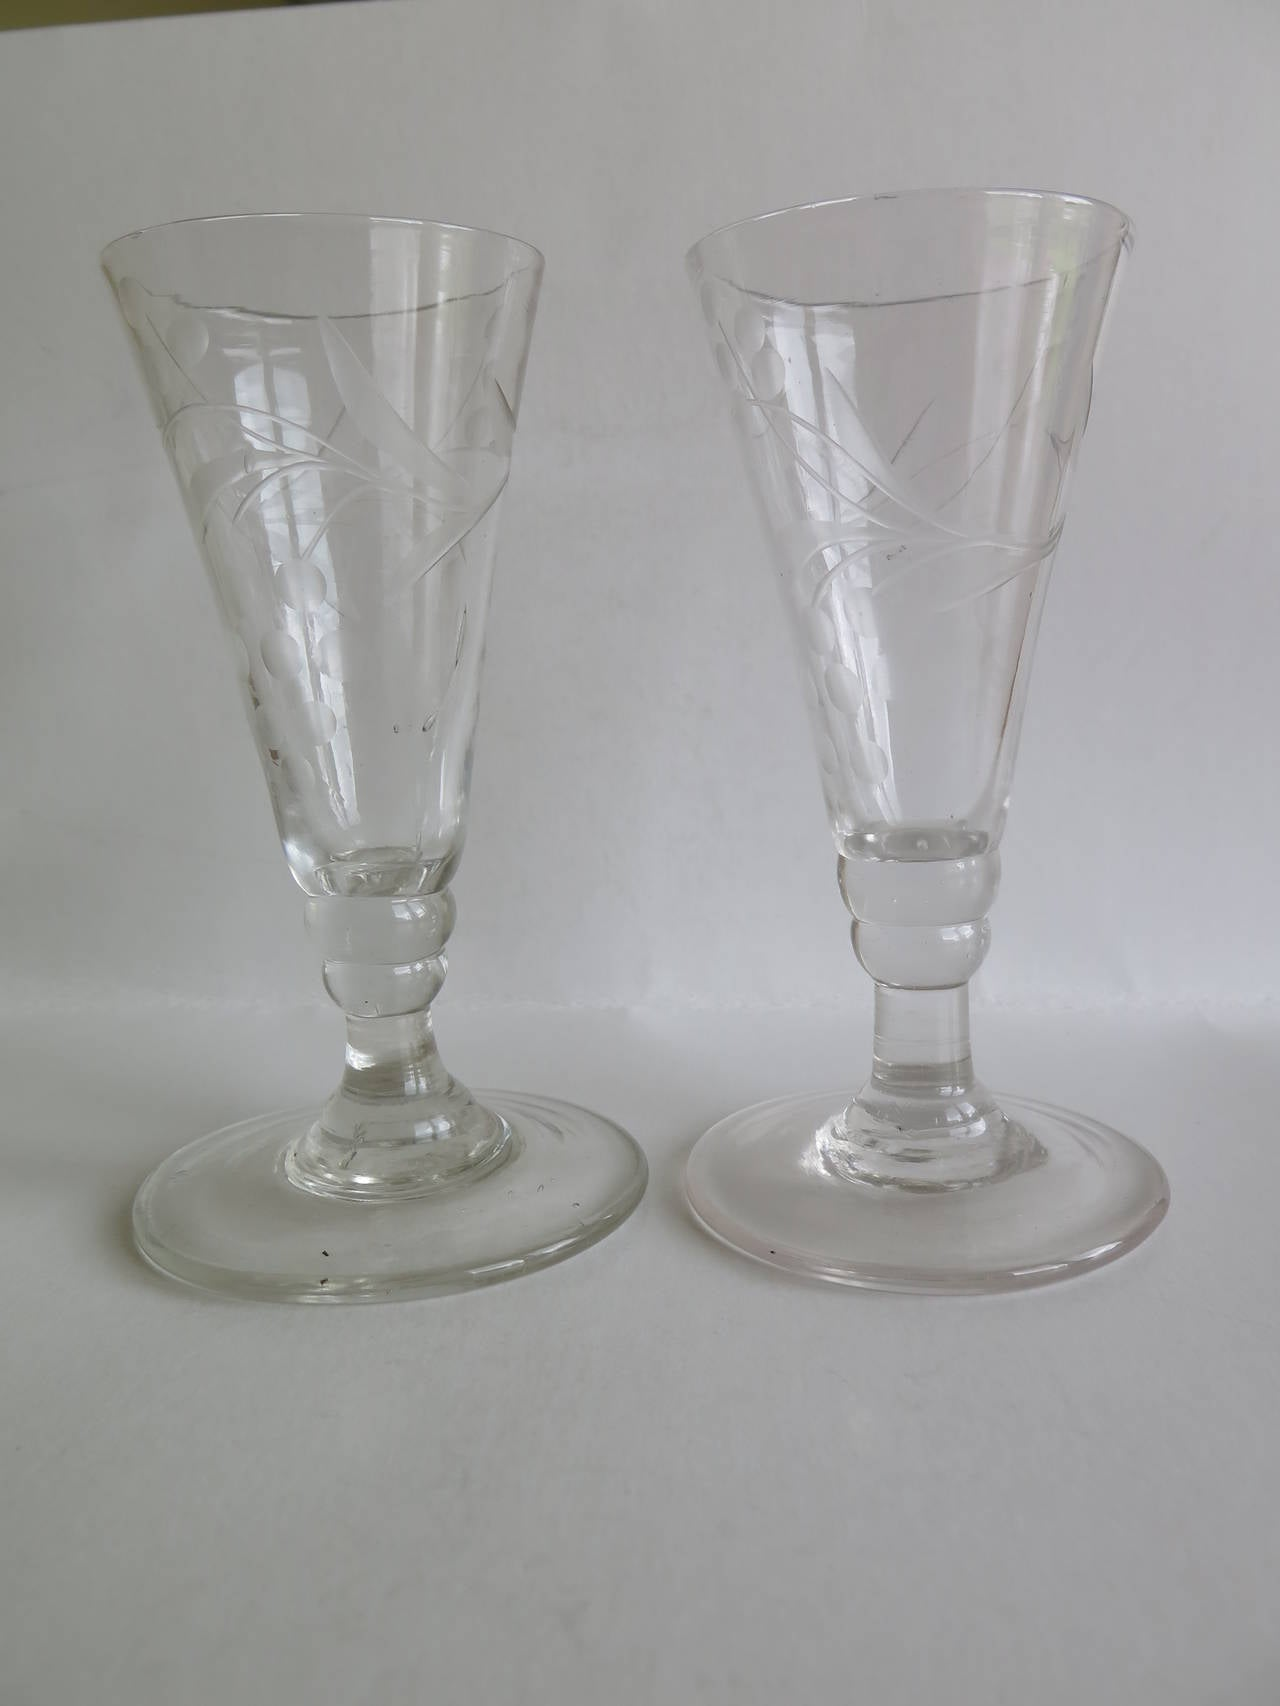 British Georgian Pair of Wine Drinking Glasses Hand-blown and Engraved, Circa 1790 For Sale